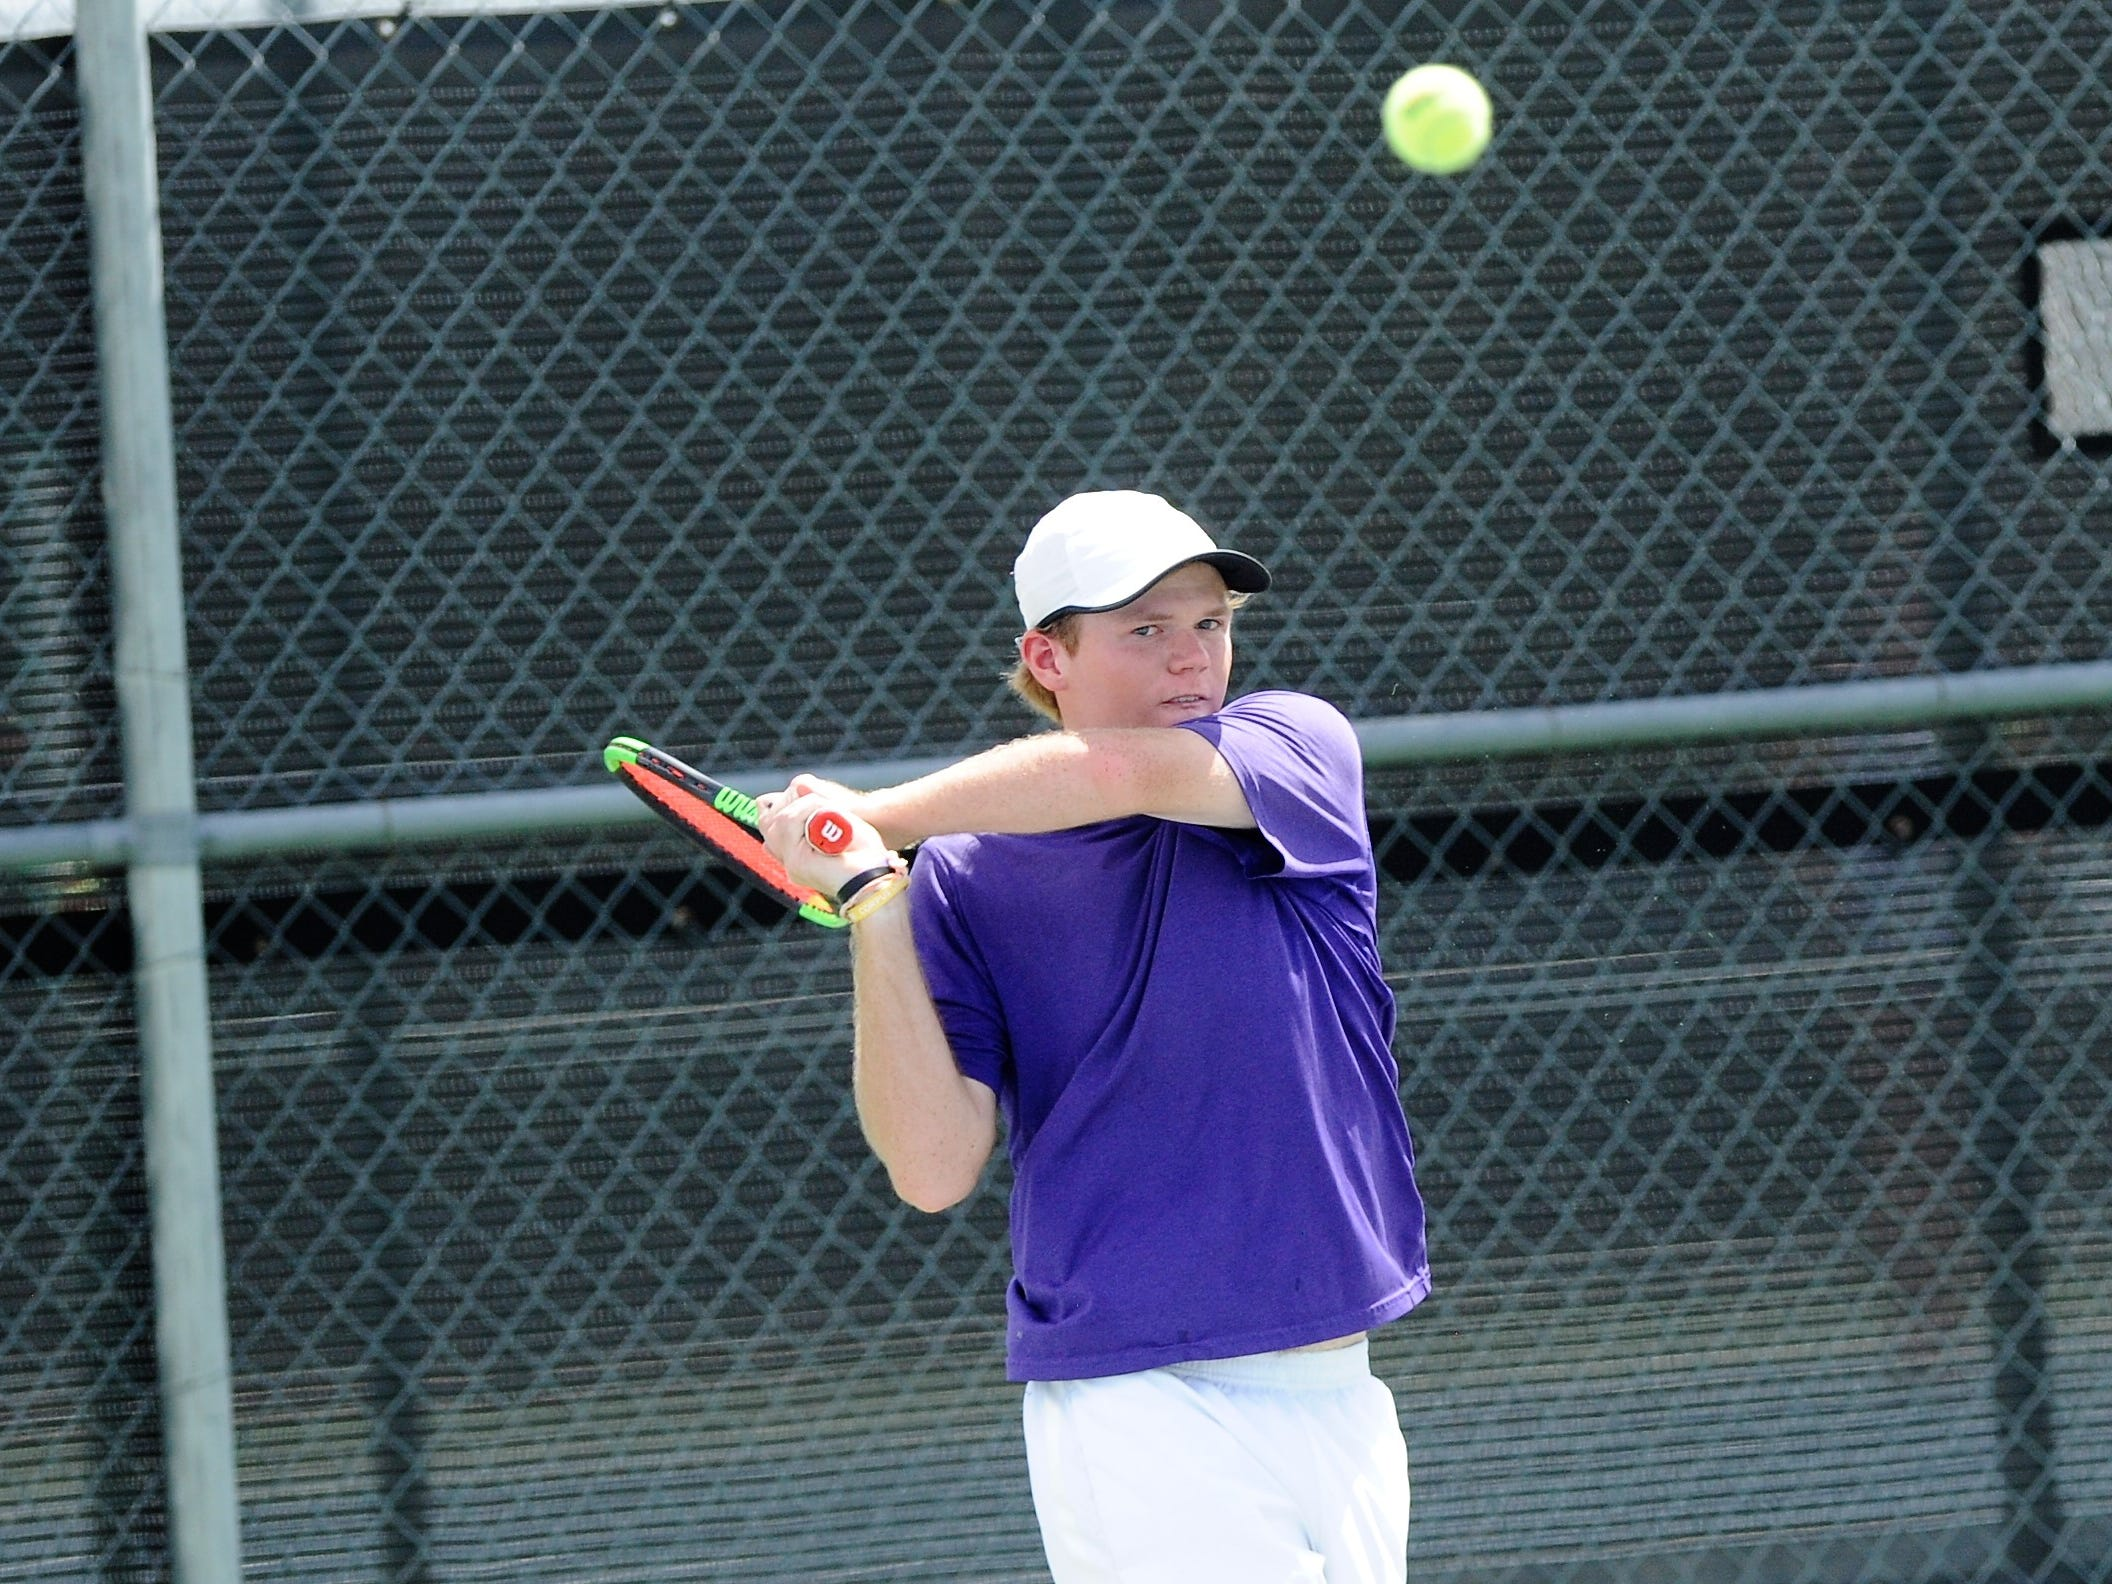 Wylie's Cole Edwards watches his backhand shot during Tuesday's match against Midlothian. Edwards and partner Aric Richardson won 6-0, 6-3 at No. 2 boys doubles.